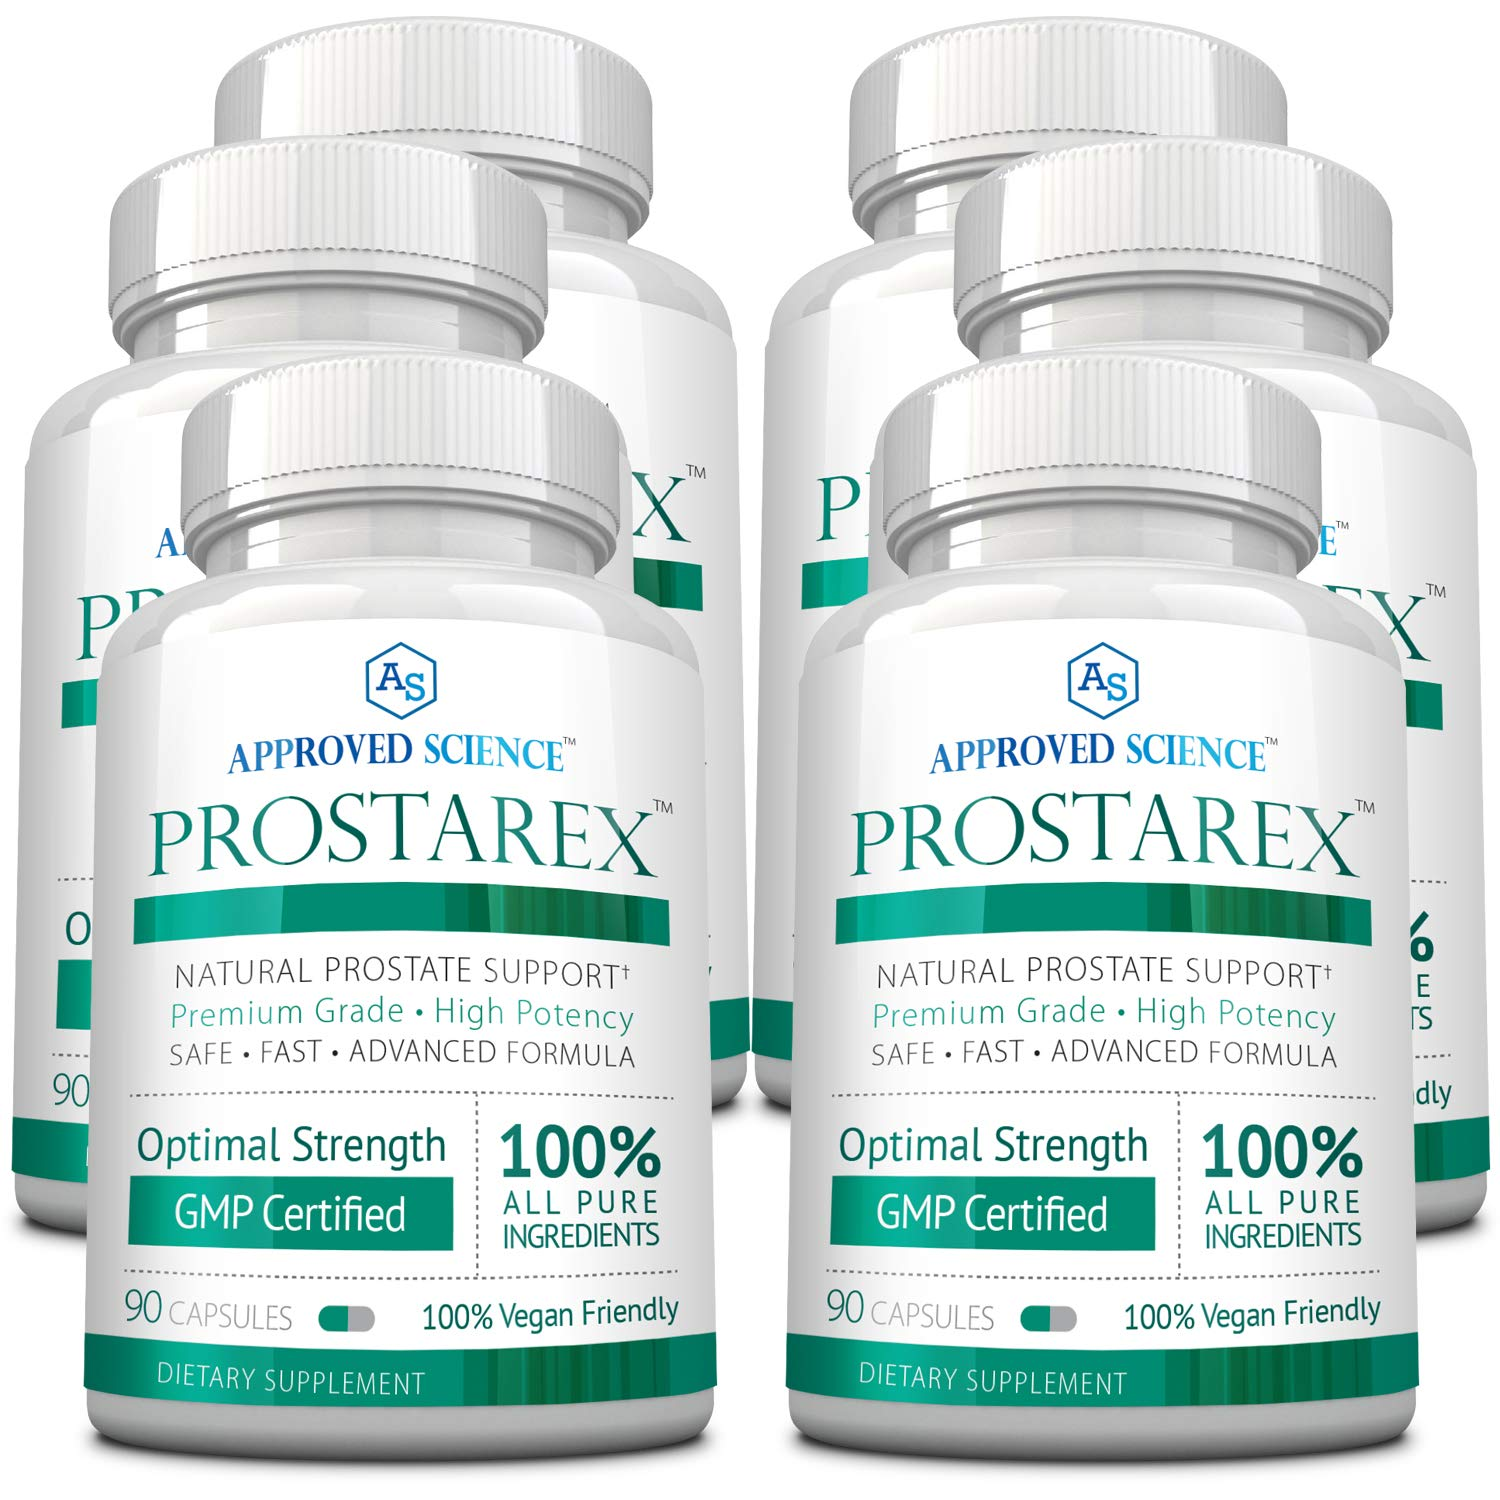 Prostarex - Extra Strength Vegan Saw Palmetto Supplement for Prostate Support - All Natural, Promotes Healthy Urination Frequency & Flow - 6 Bottles